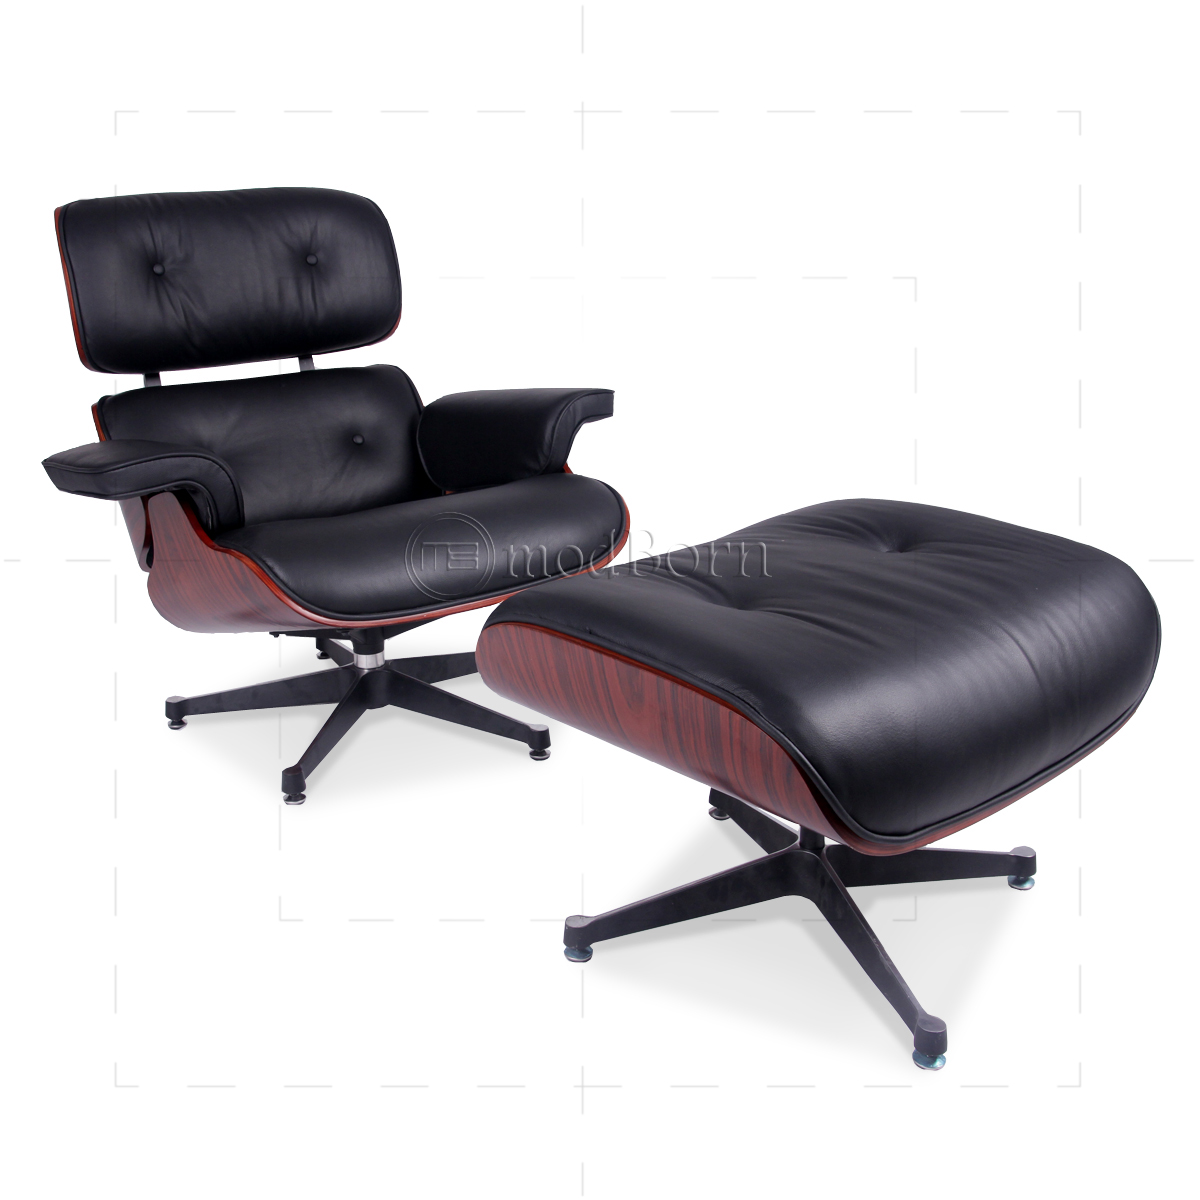 Fine Eames Style Lounge Chair And Ottoman Black Leather Unemploymentrelief Wooden Chair Designs For Living Room Unemploymentrelieforg